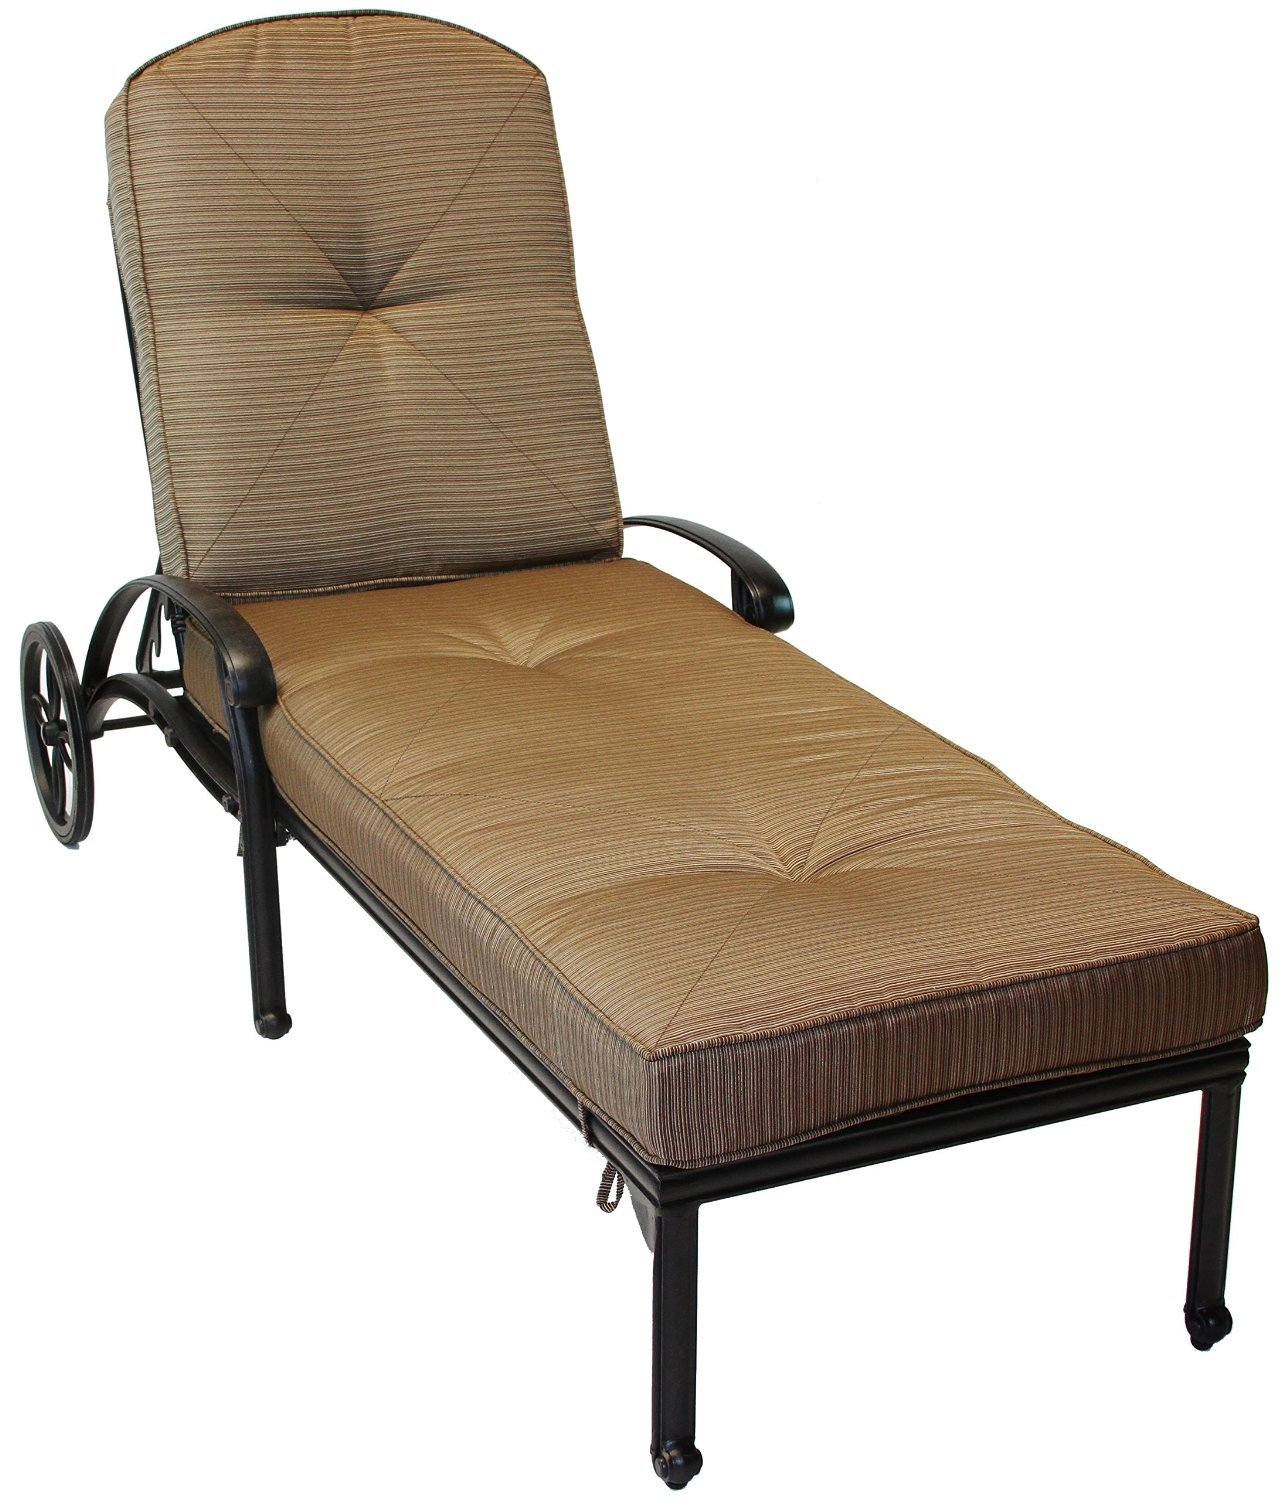 Mandalay Cast Aluminum Powder Coated Chaise Lounge With